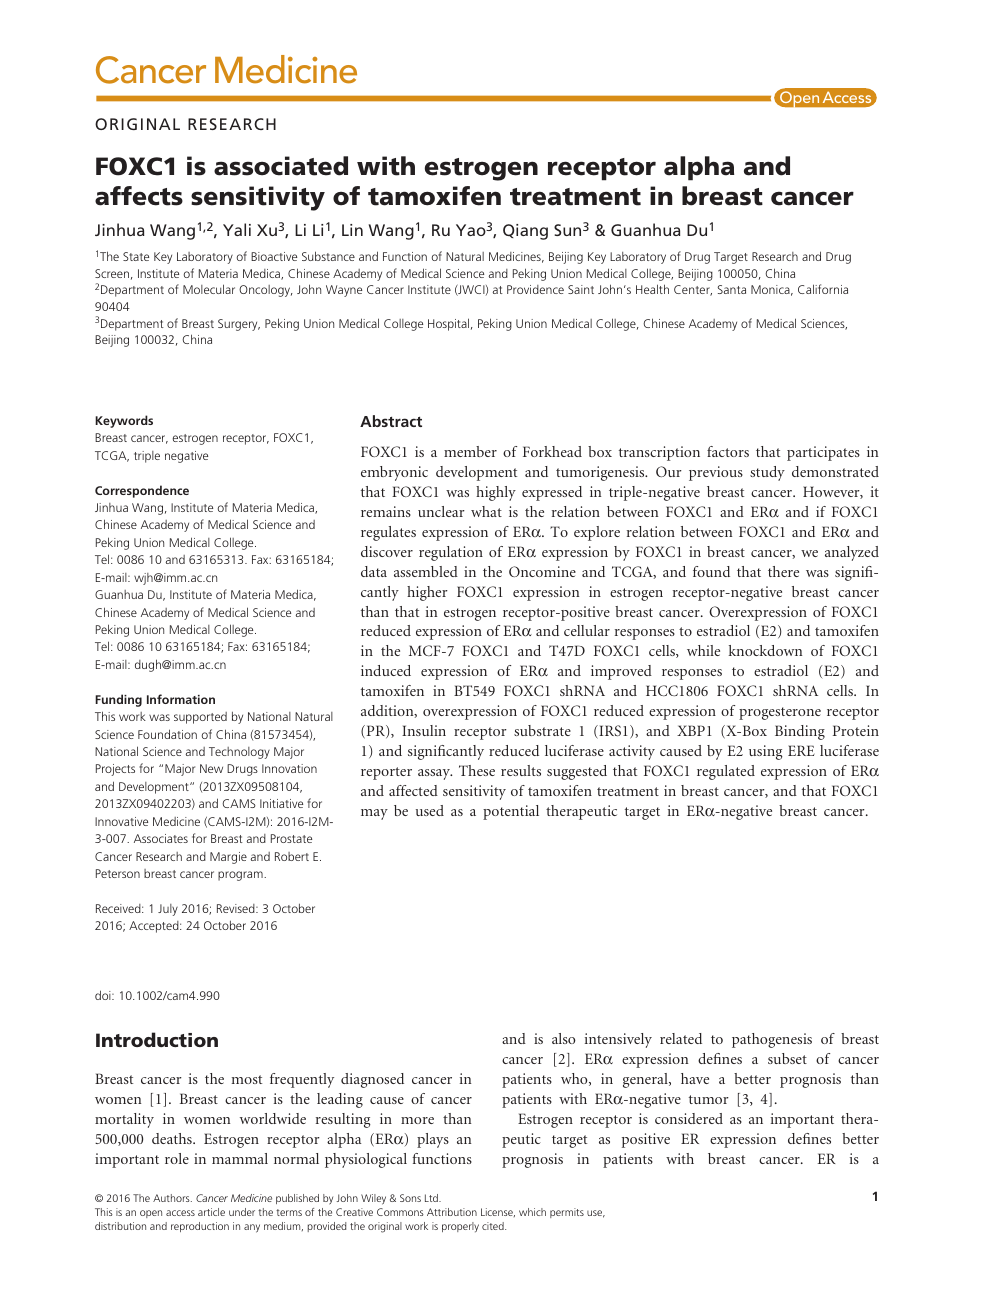 Research paper of breast cancer